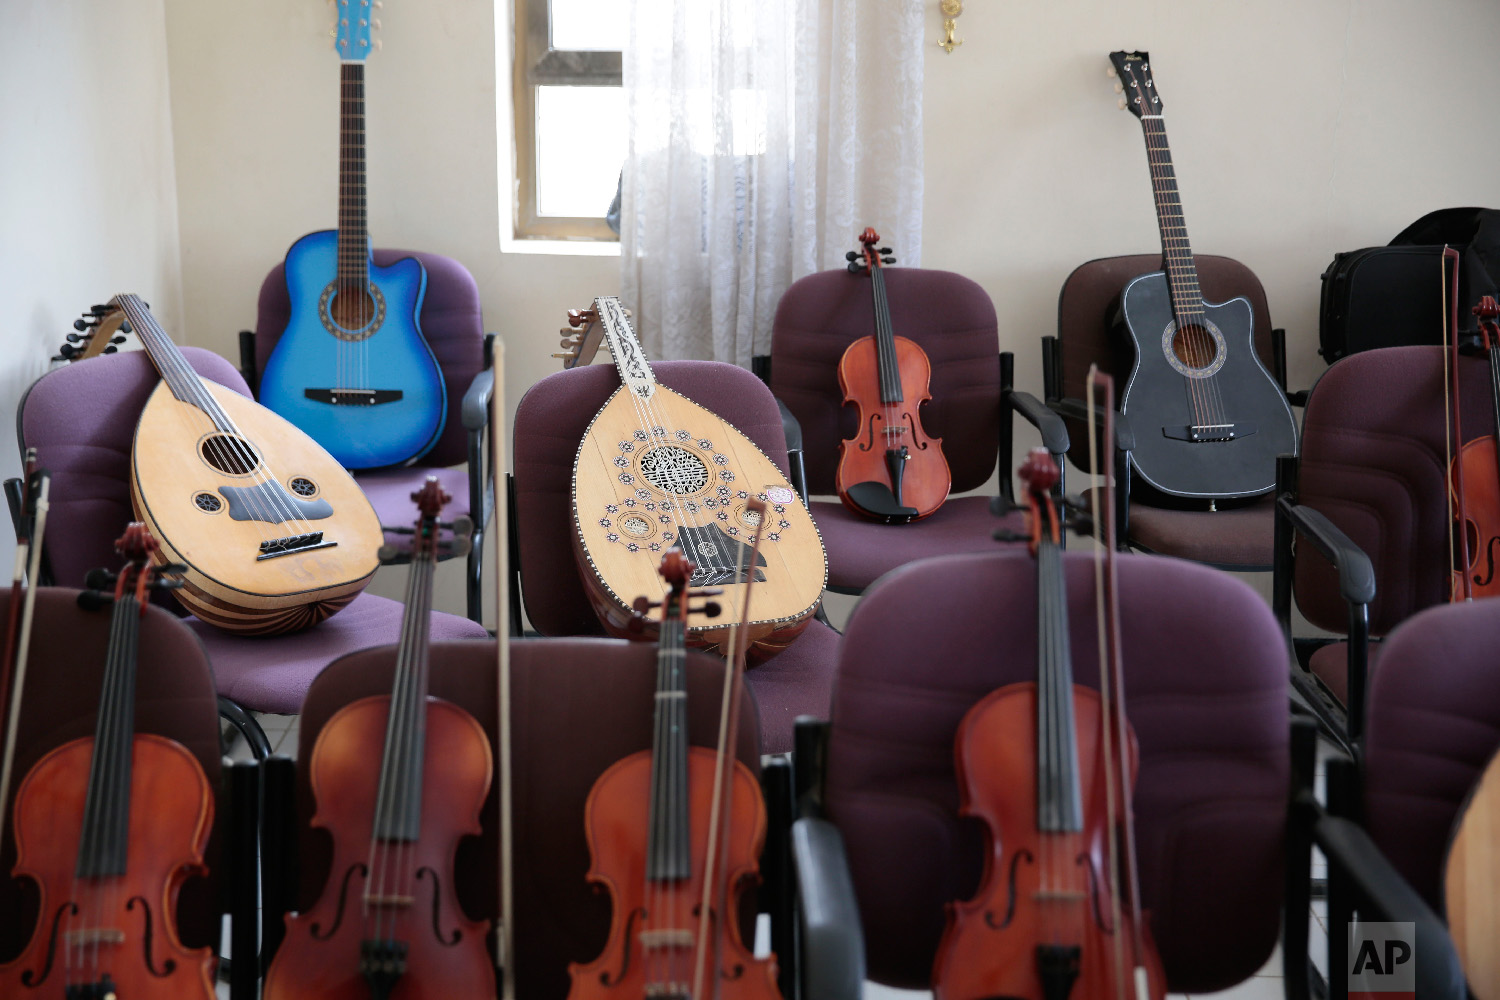 Musical instruments sit on chairs during a break of a music class at the Cultural Centre in Sanaa, Yemen on Monday, April 9, 2018.(AP Photo/Hani Mohammed)